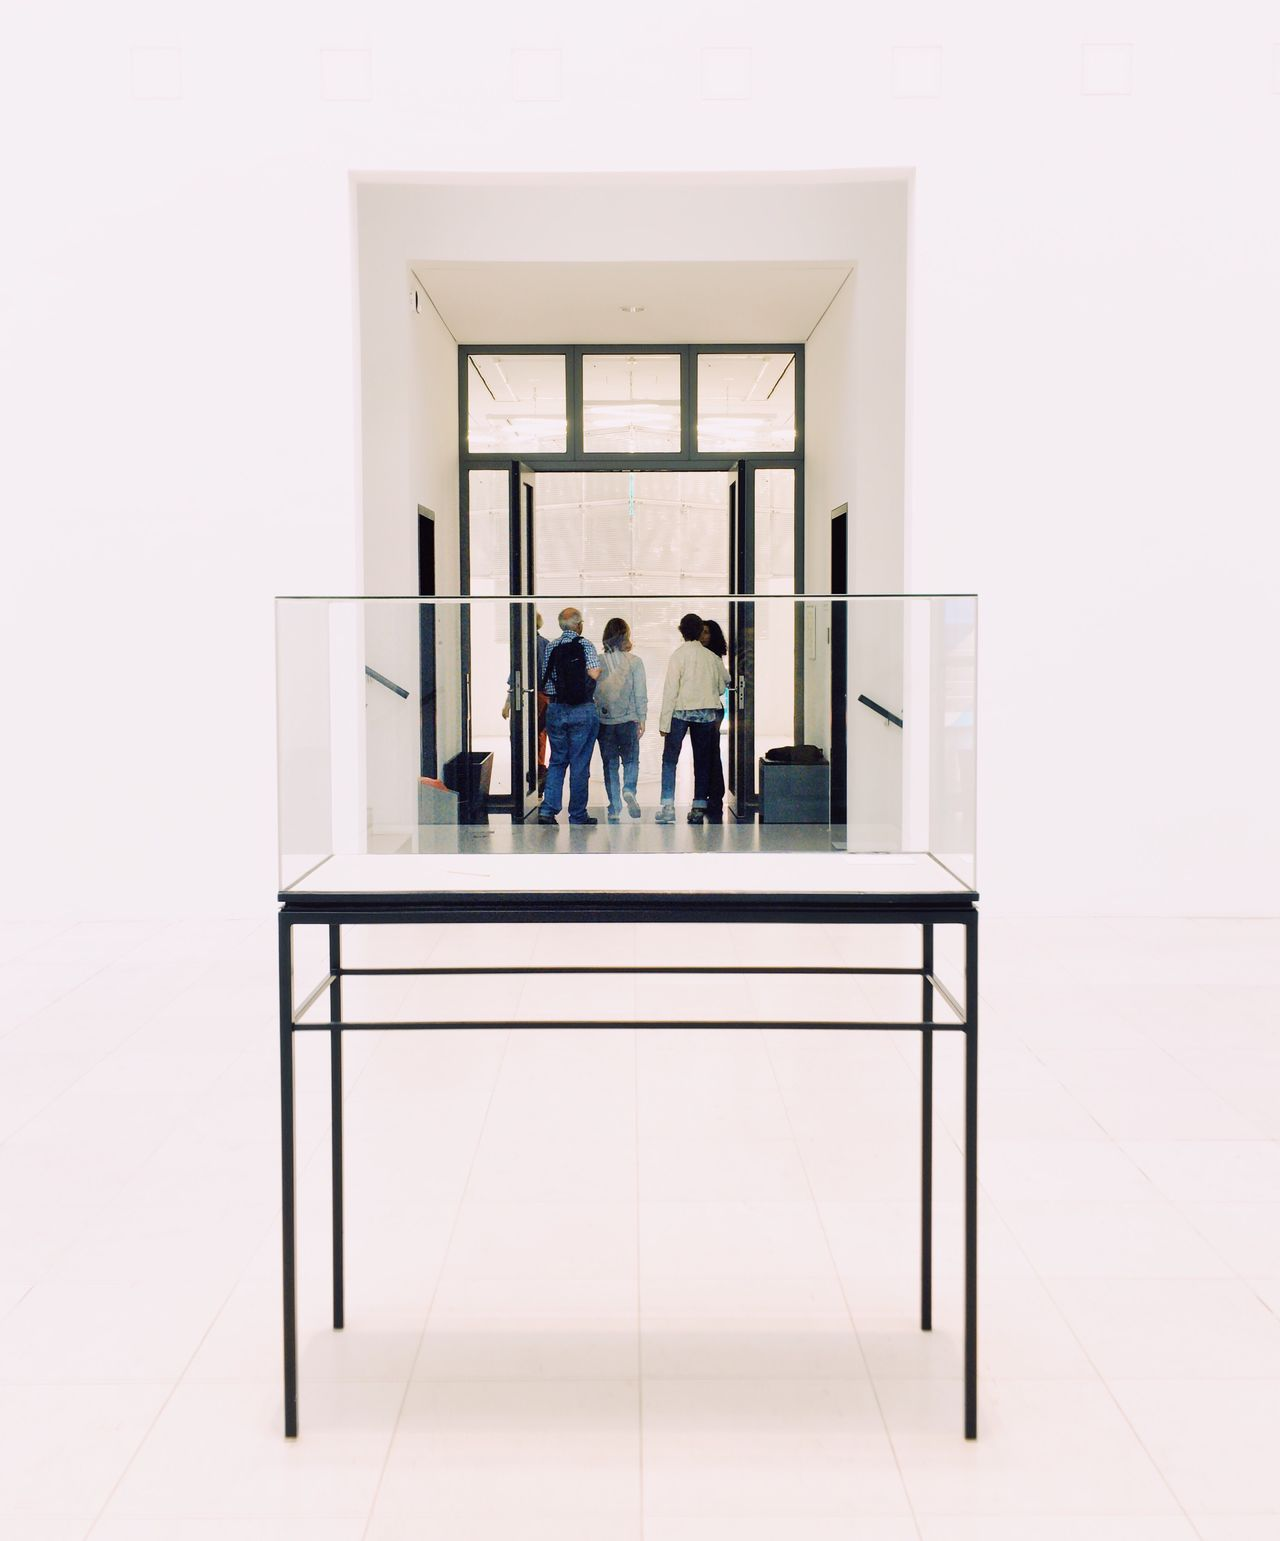 People in a Display Case. Series. Modern indoors full length Architecture people Teamwork Urban geometry Minimalist Architecture interior design art ArtWork arts culture and entertainment museum minimalism minimal Architecture architectural feature Better Look Twice conceptual conceptual photography Mobile Conversations